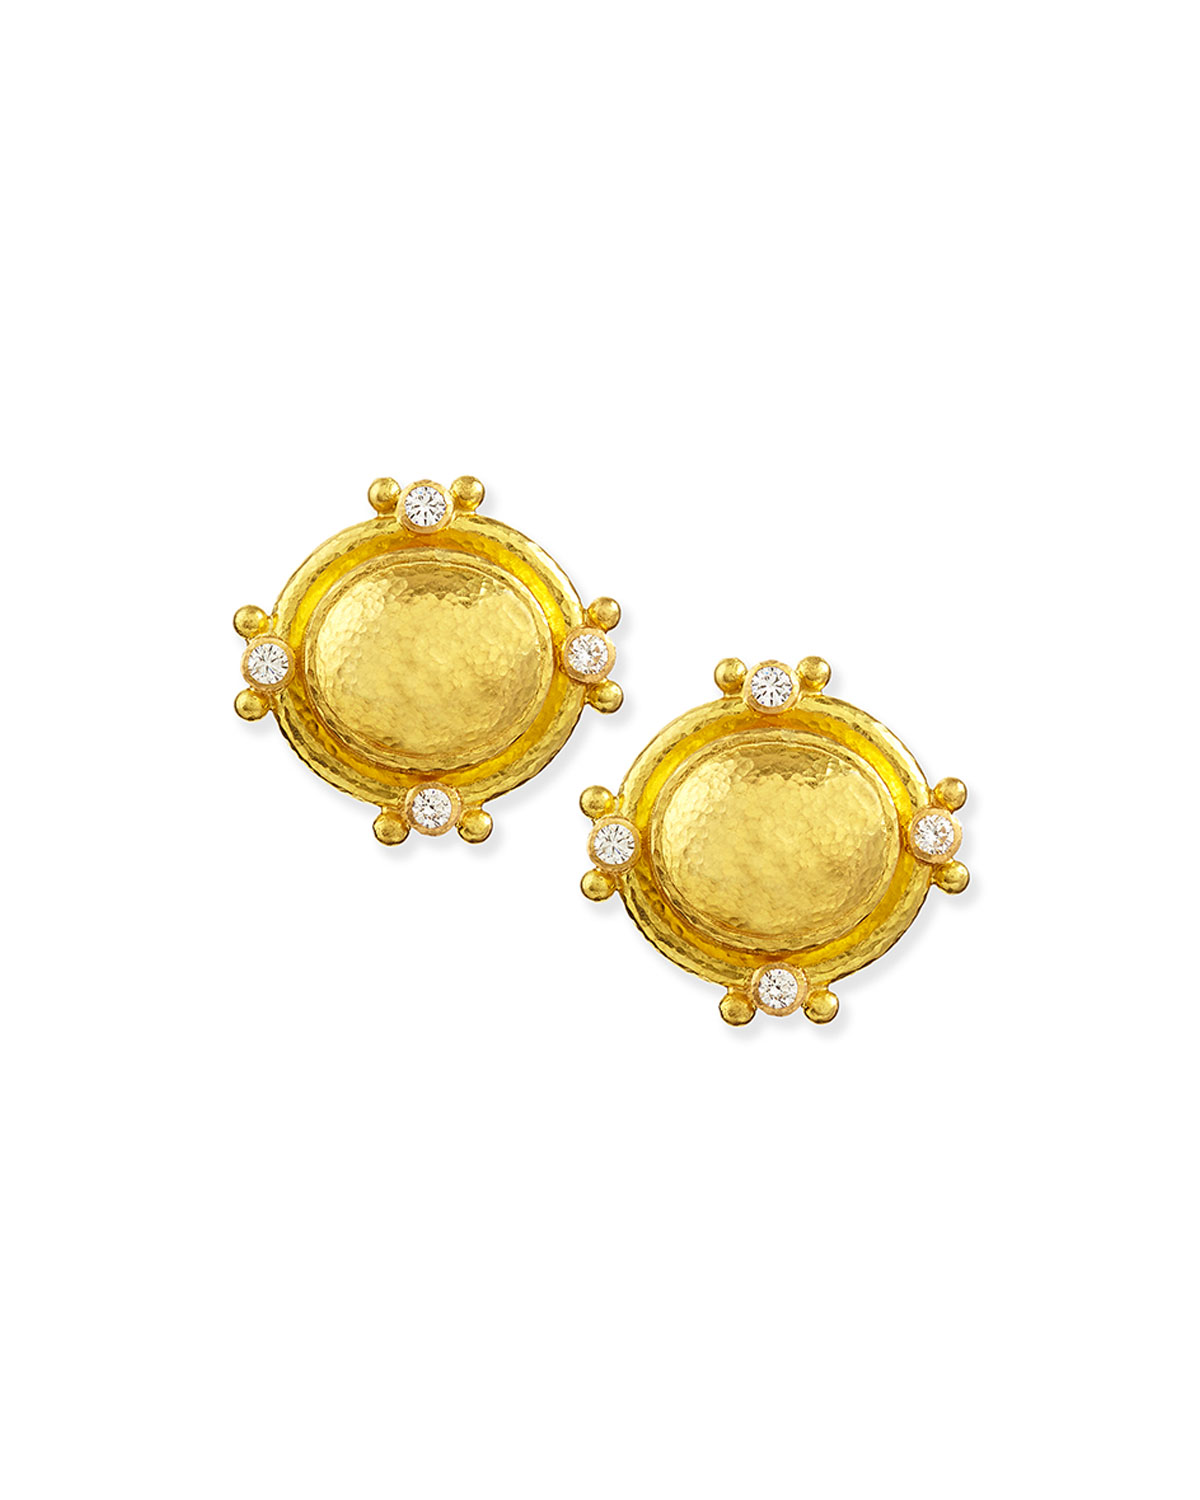 Elizabeth Locke 19k Gold Dome Earrings with Diamonds fyb4Ps